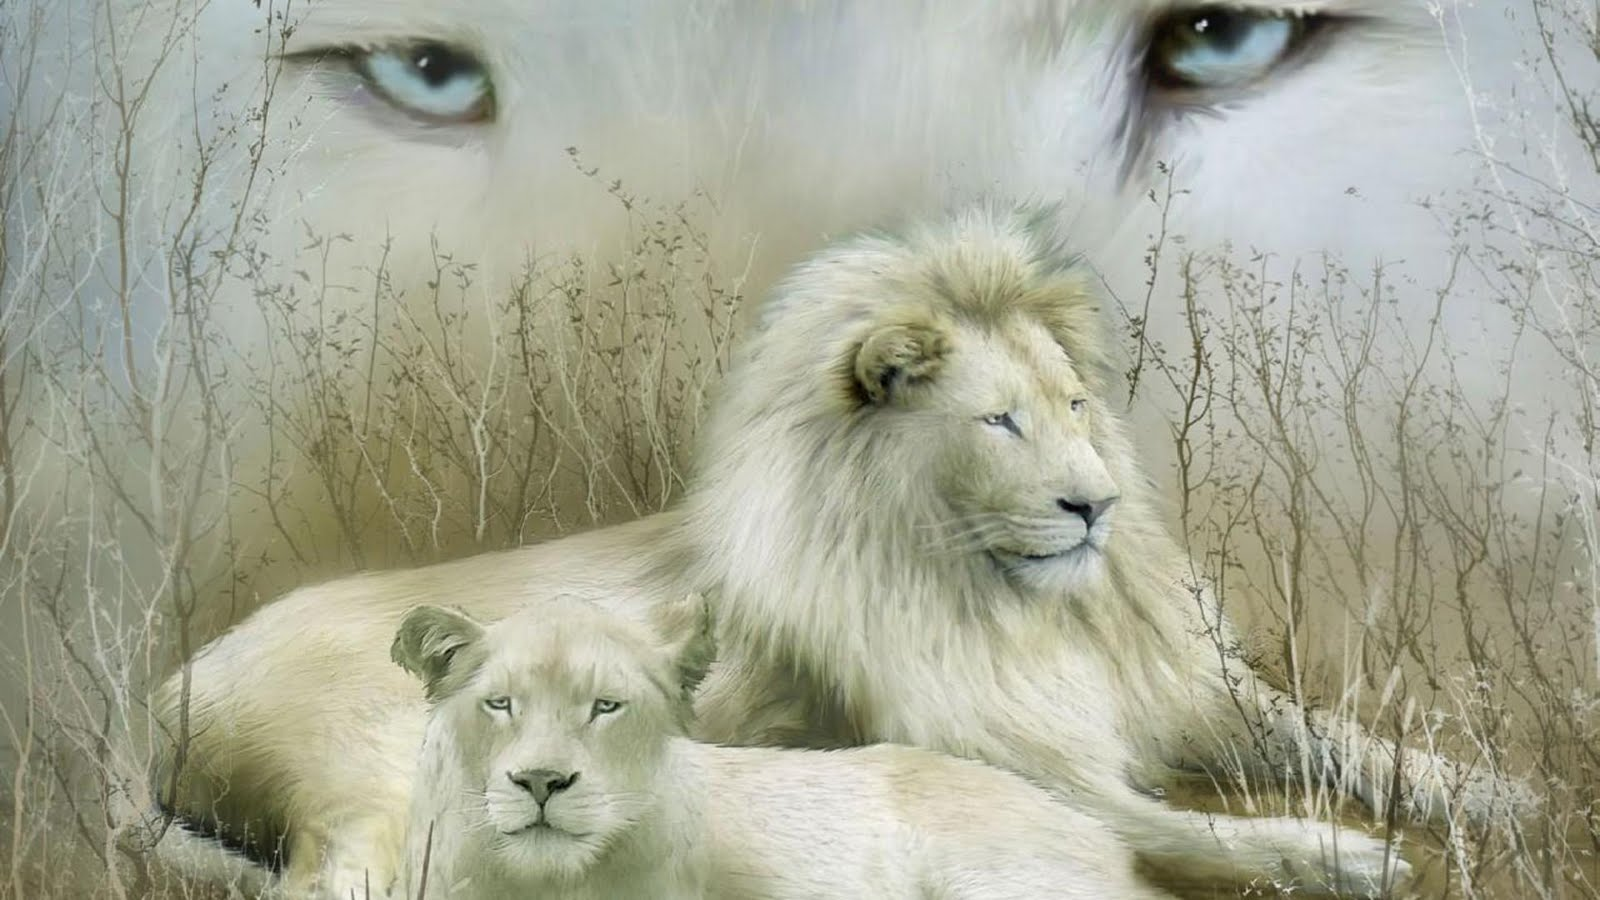 White Lion Roar Wallpaper image gallery 1600x900